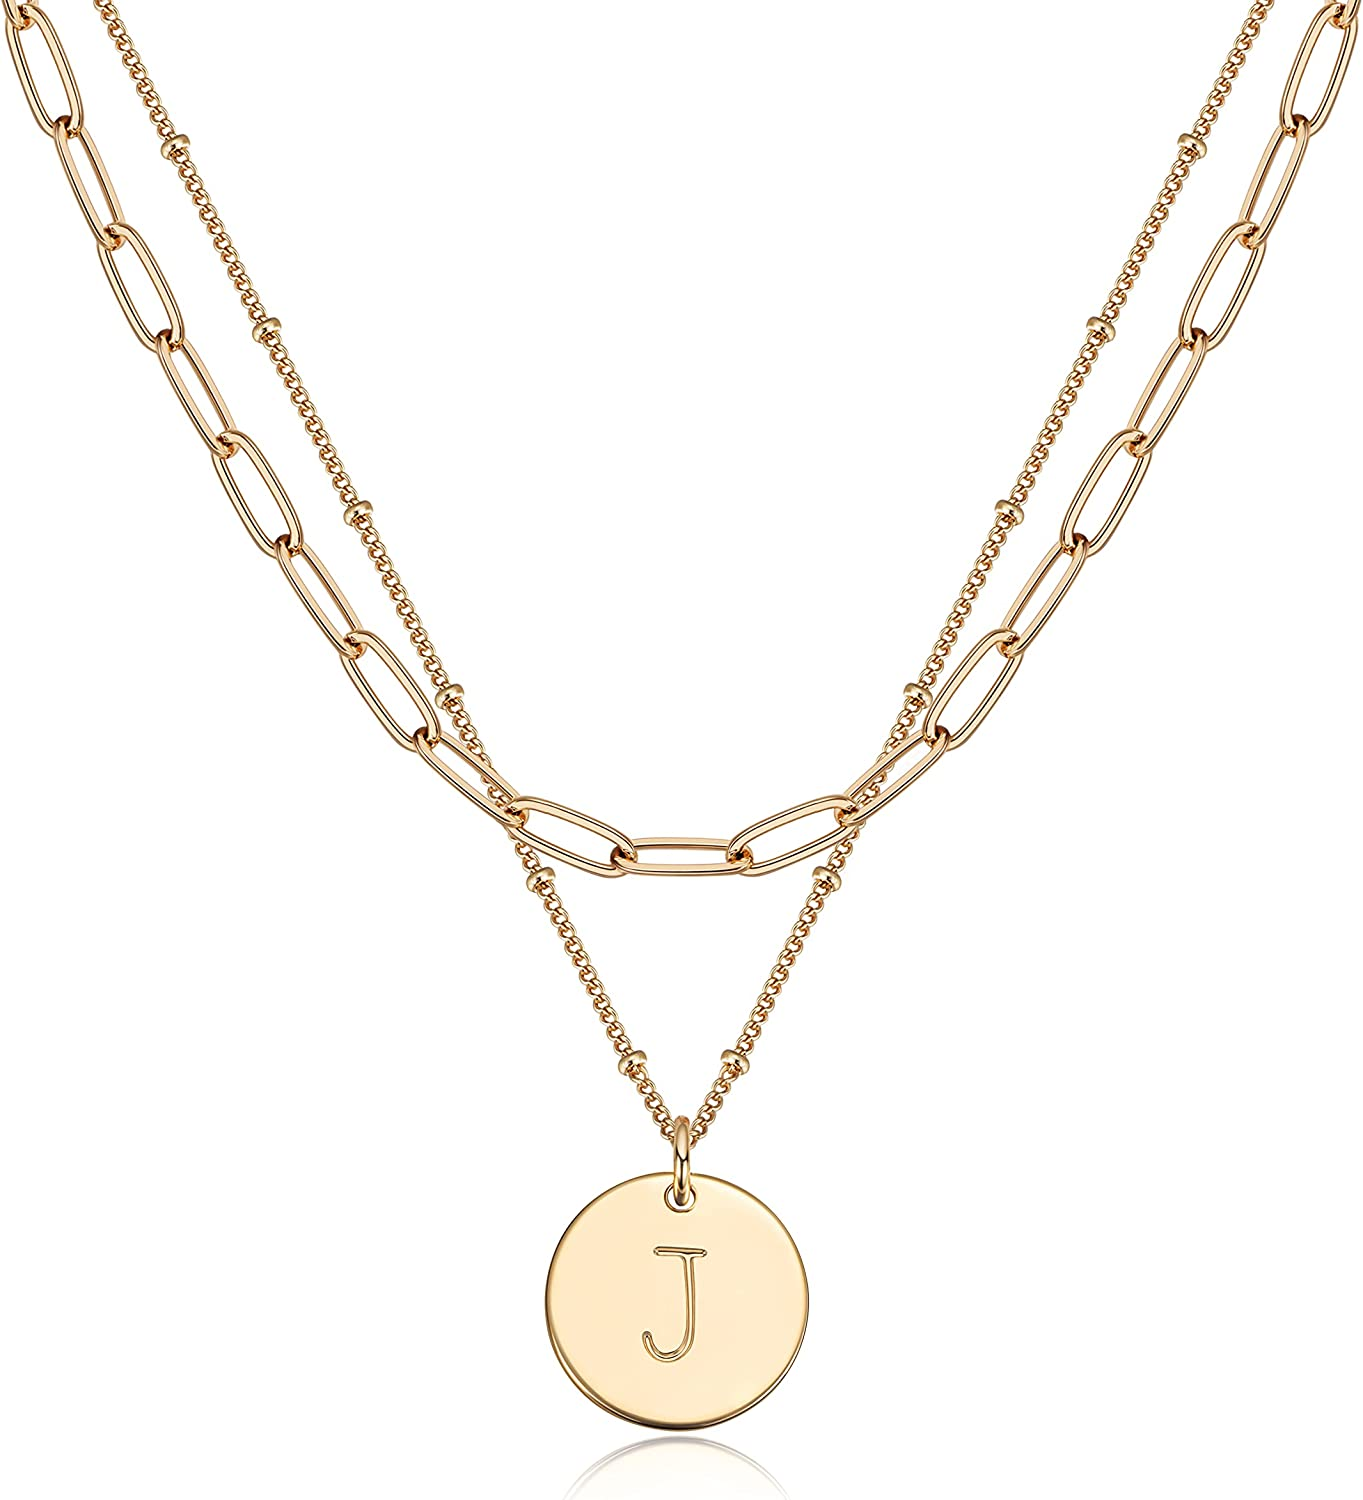 Fettero Layered Necklace Set Gold Coin Disc Initial Pendant 14K Gold Plated Dainty Satellite Paperclip Link Chain Choker Personalized Jewelry Birthday Gift for Women Letter A-Z